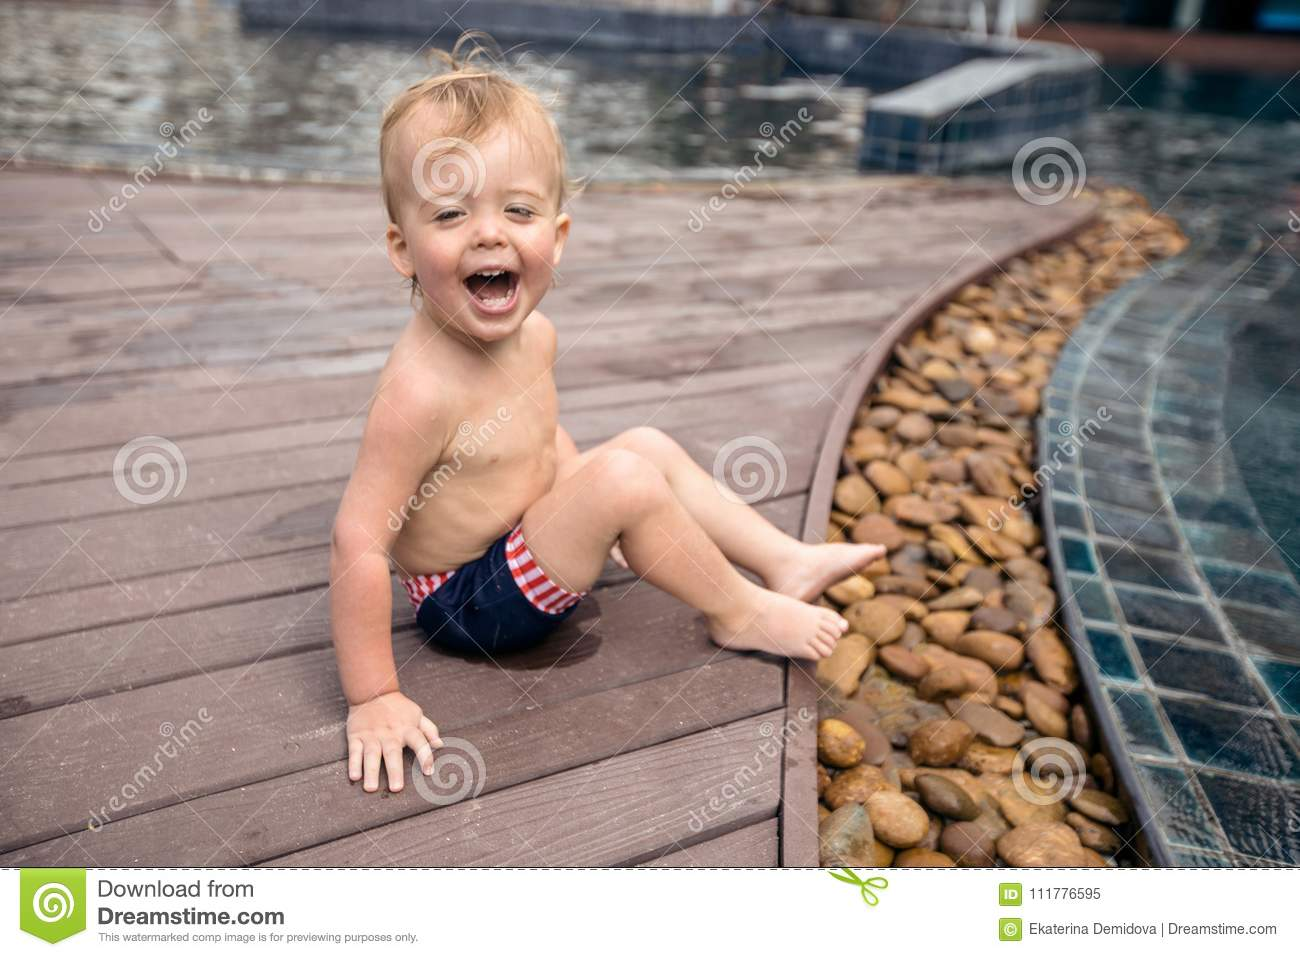 Little boy laughing on poolside